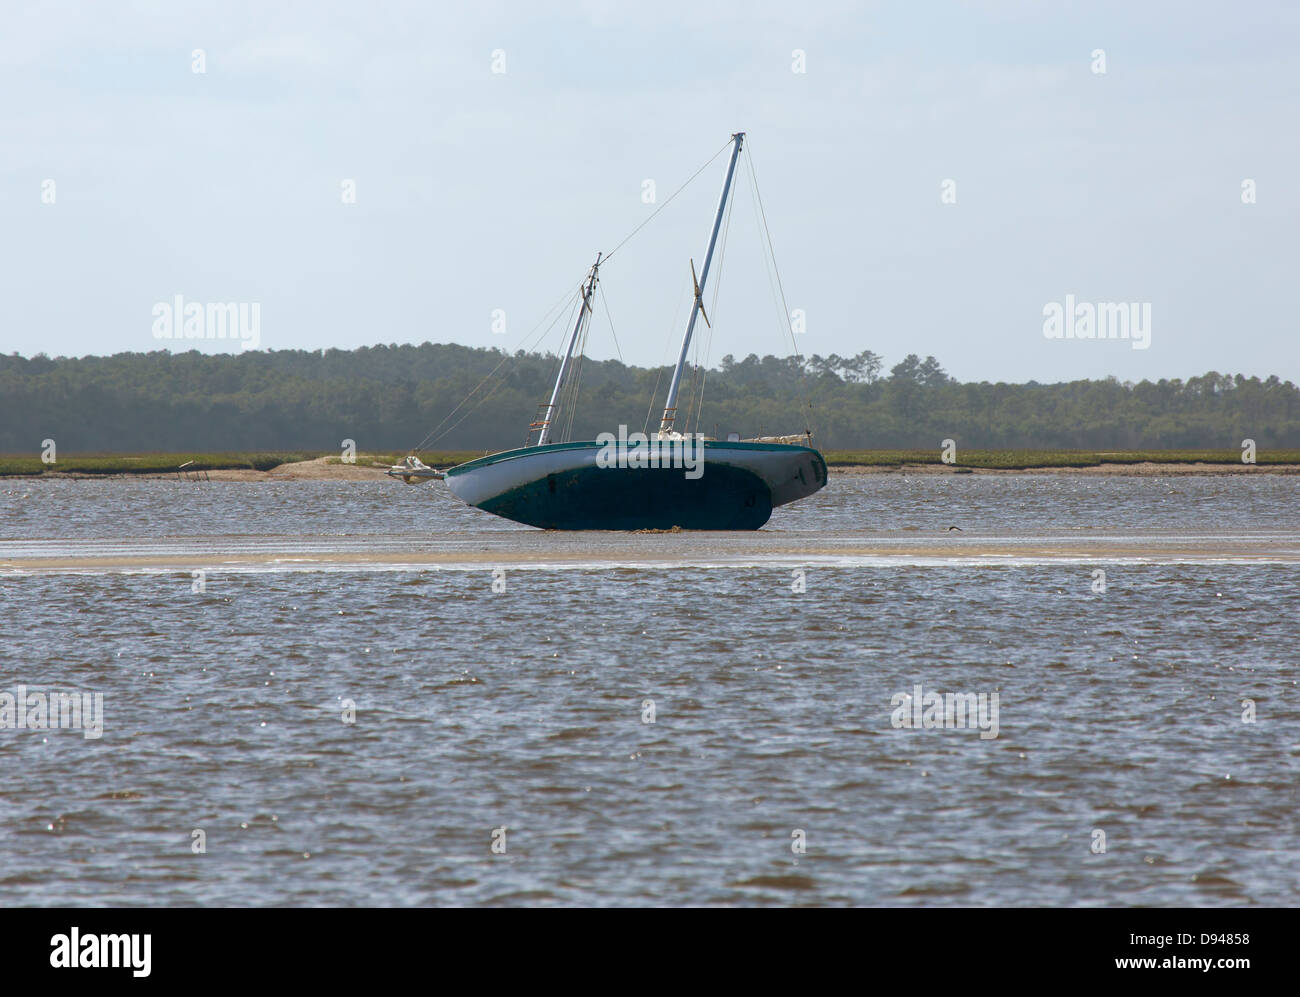 Two masted schooner run aground on a sand bar in the Intracoastal Waterway in Georgia - Stock Image